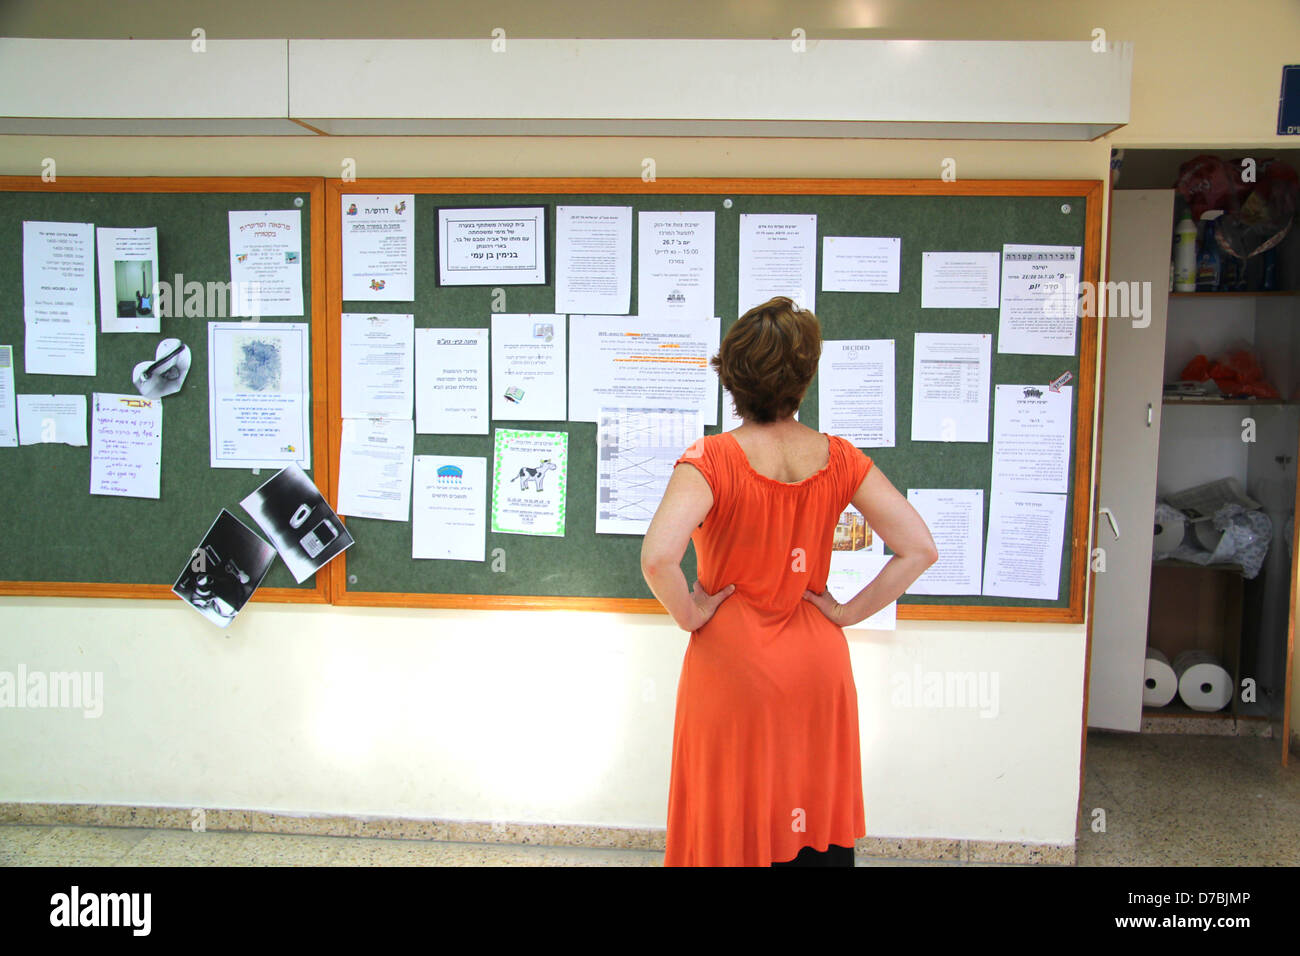 The kibbutz notice board by the dining room of Ketura in the Arava - Stock Image